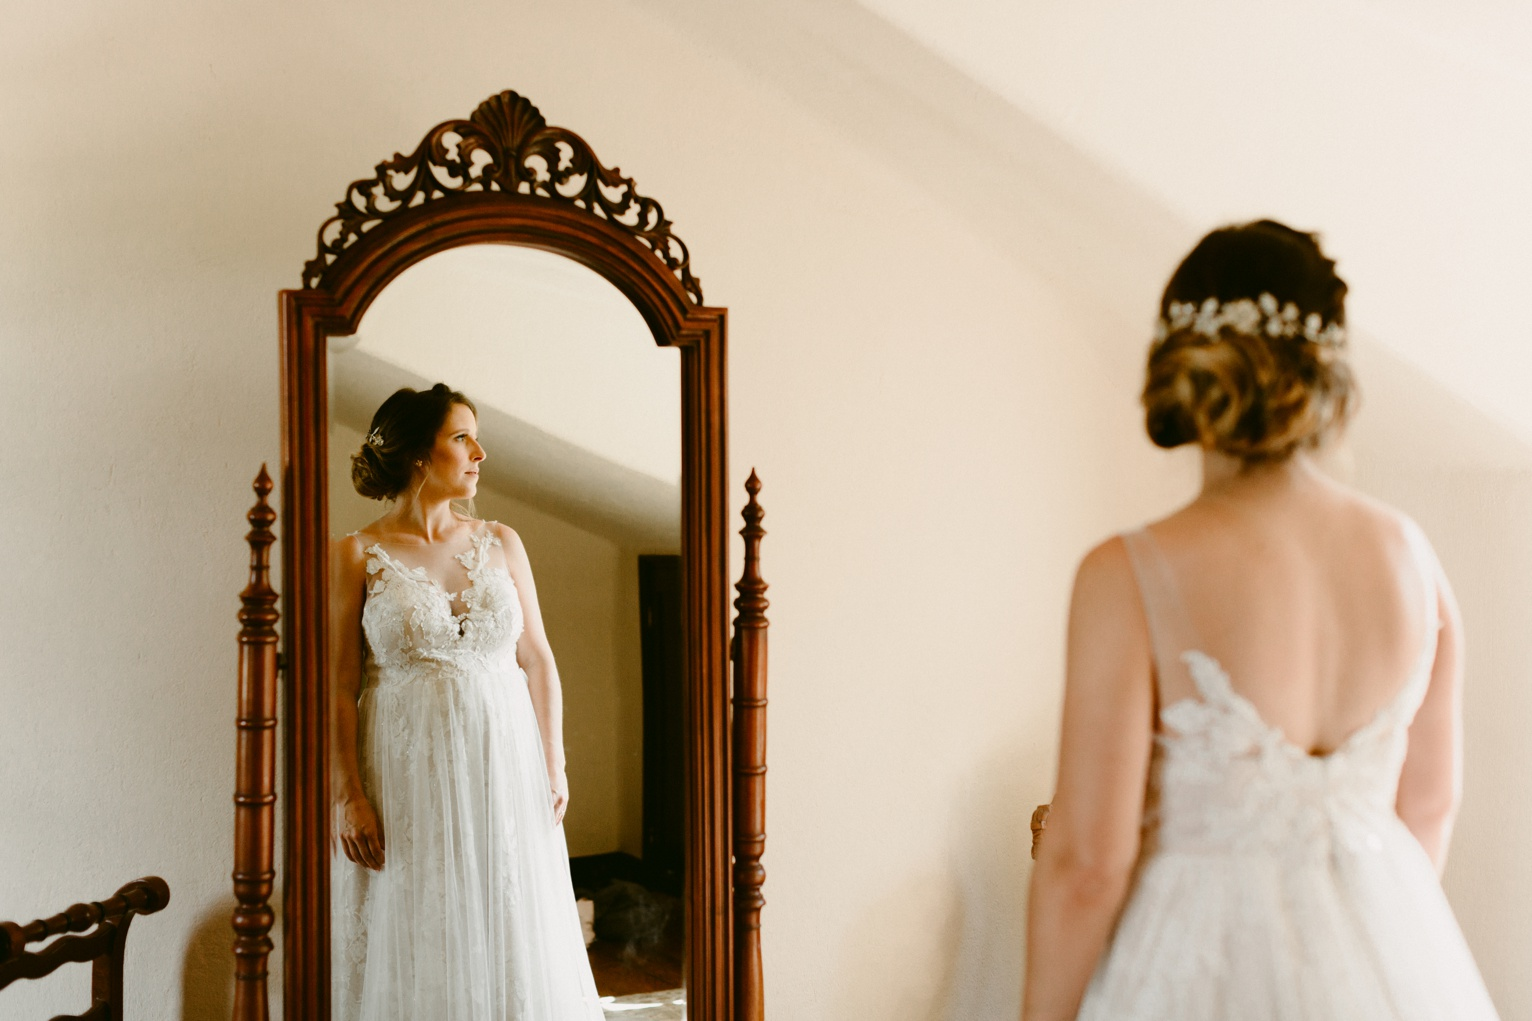 Dreamtownco.com_blog_Nick&Lindsay_Wedding_0034.jpg